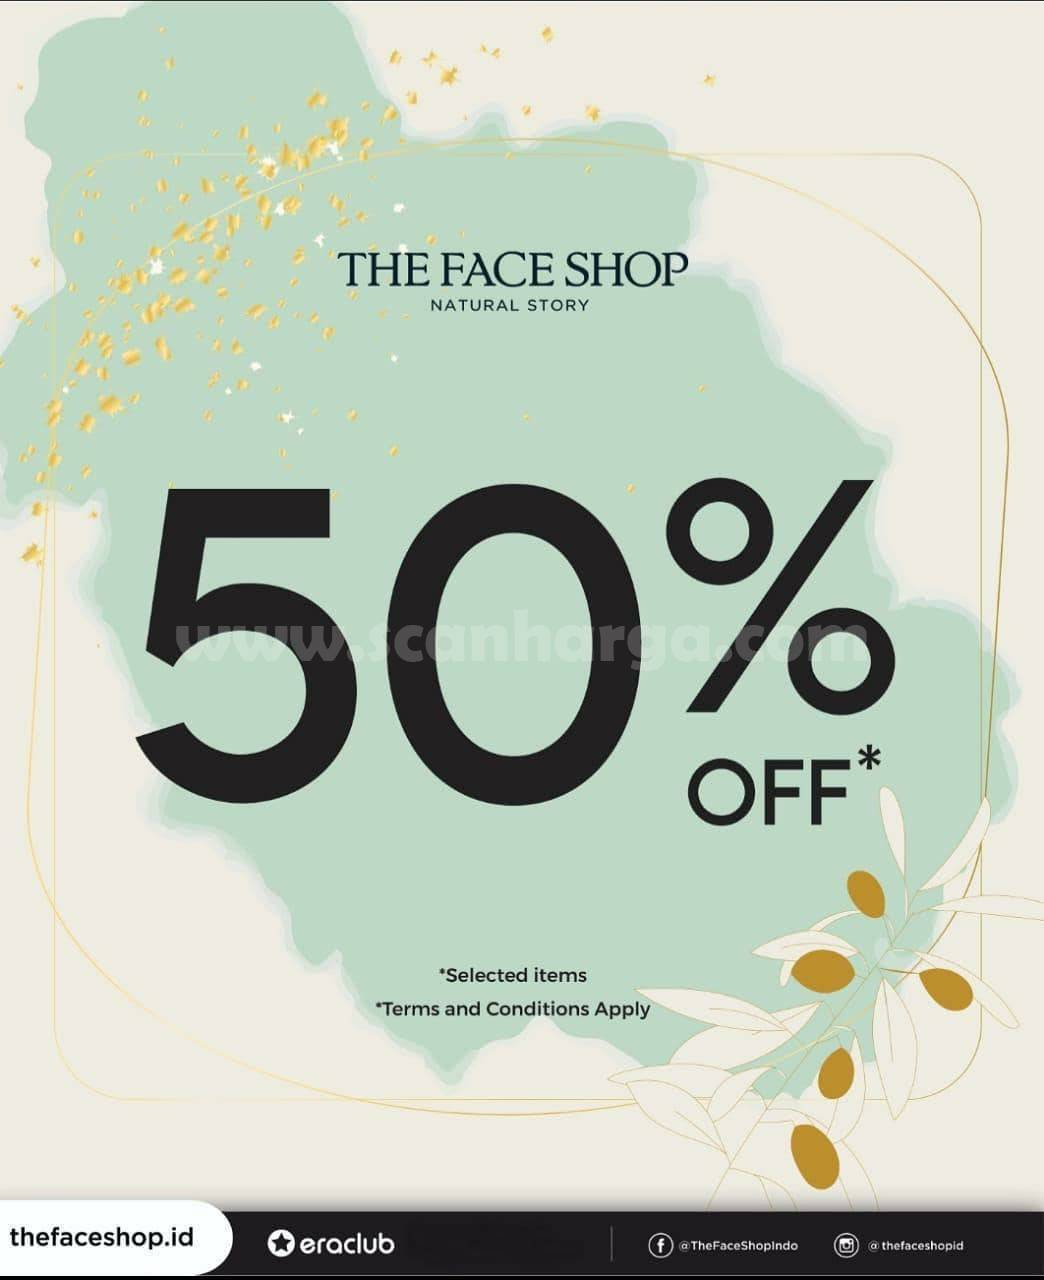 Promo THE FACE SHOP Discount 50% Off Selected Items